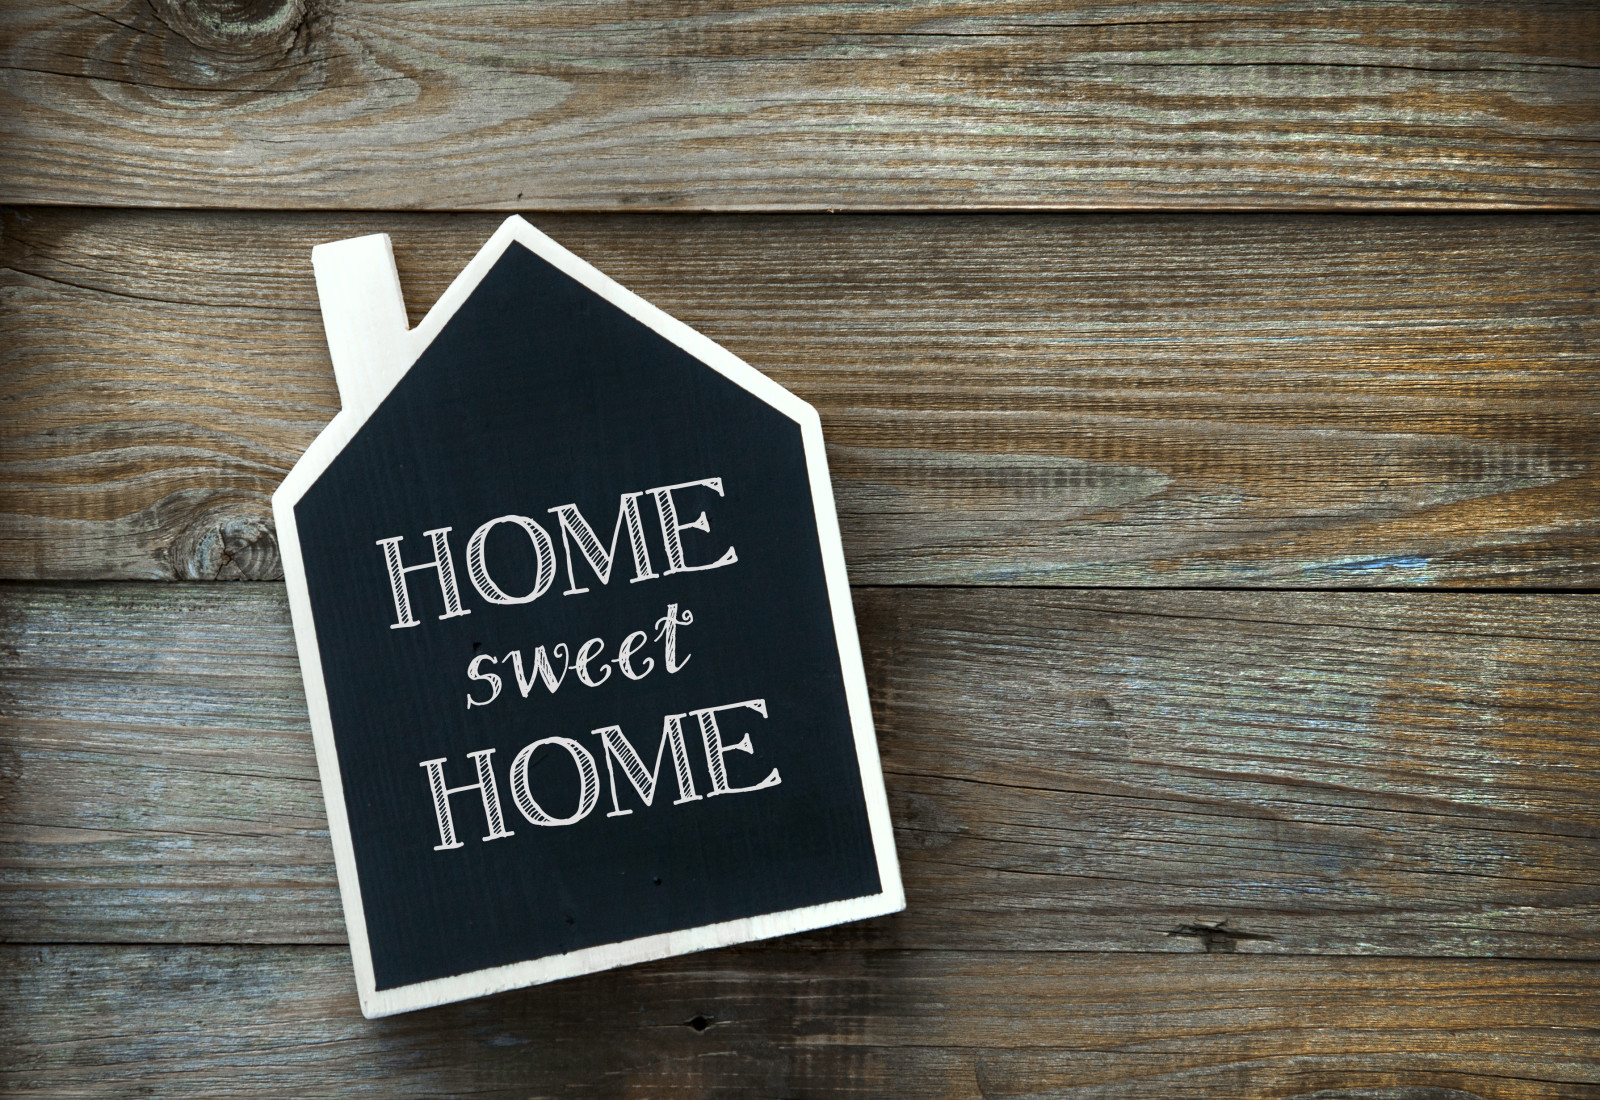 5 Questions to Ask Yourself Before Buying Your First Home